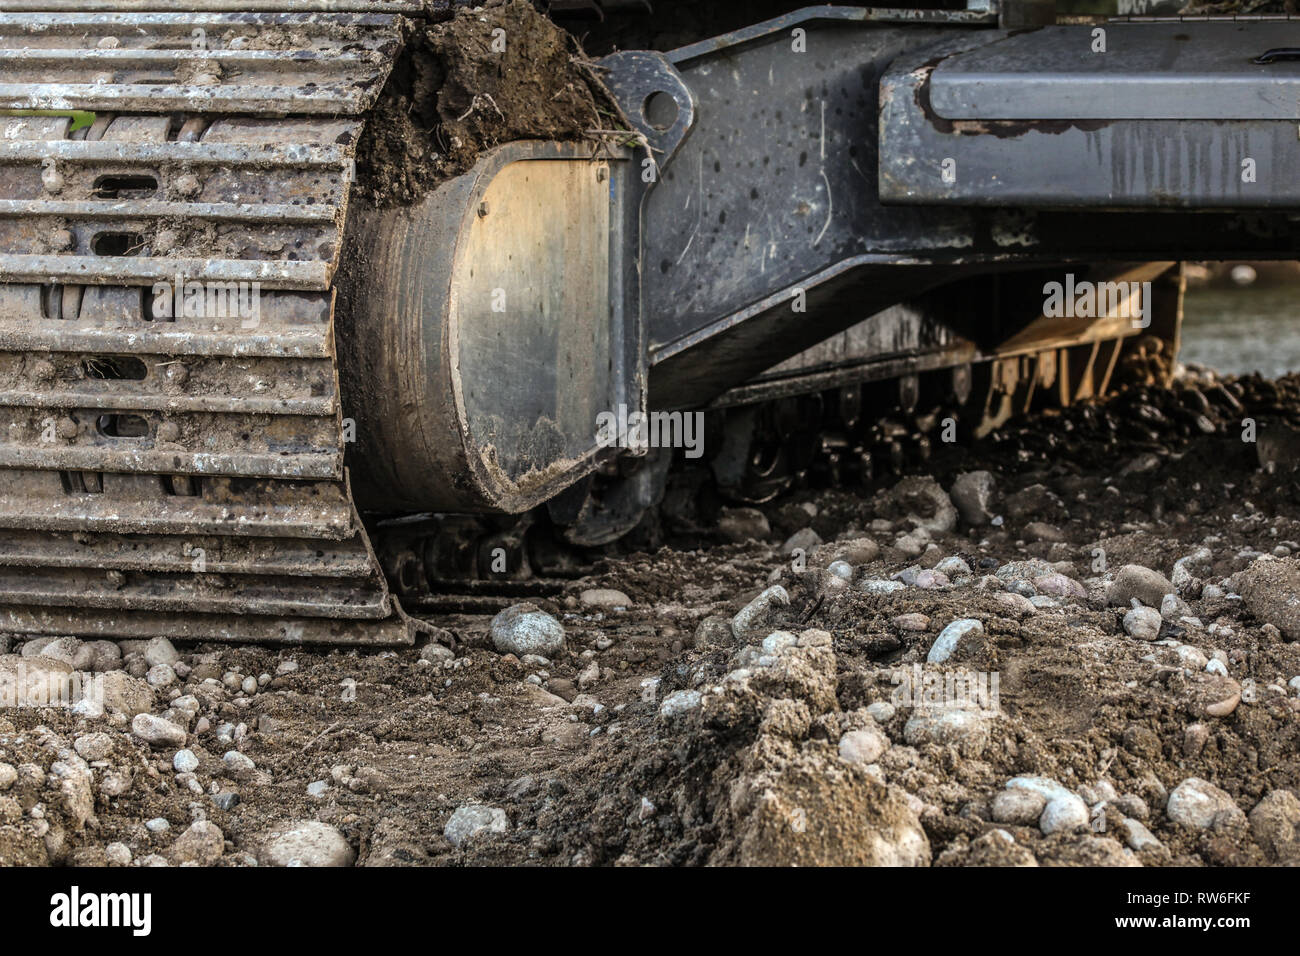 Heavy Excavator Digger Machine Track Detail Some Stones In Foreground Abstract Industrial Construction Background Rw Fkf